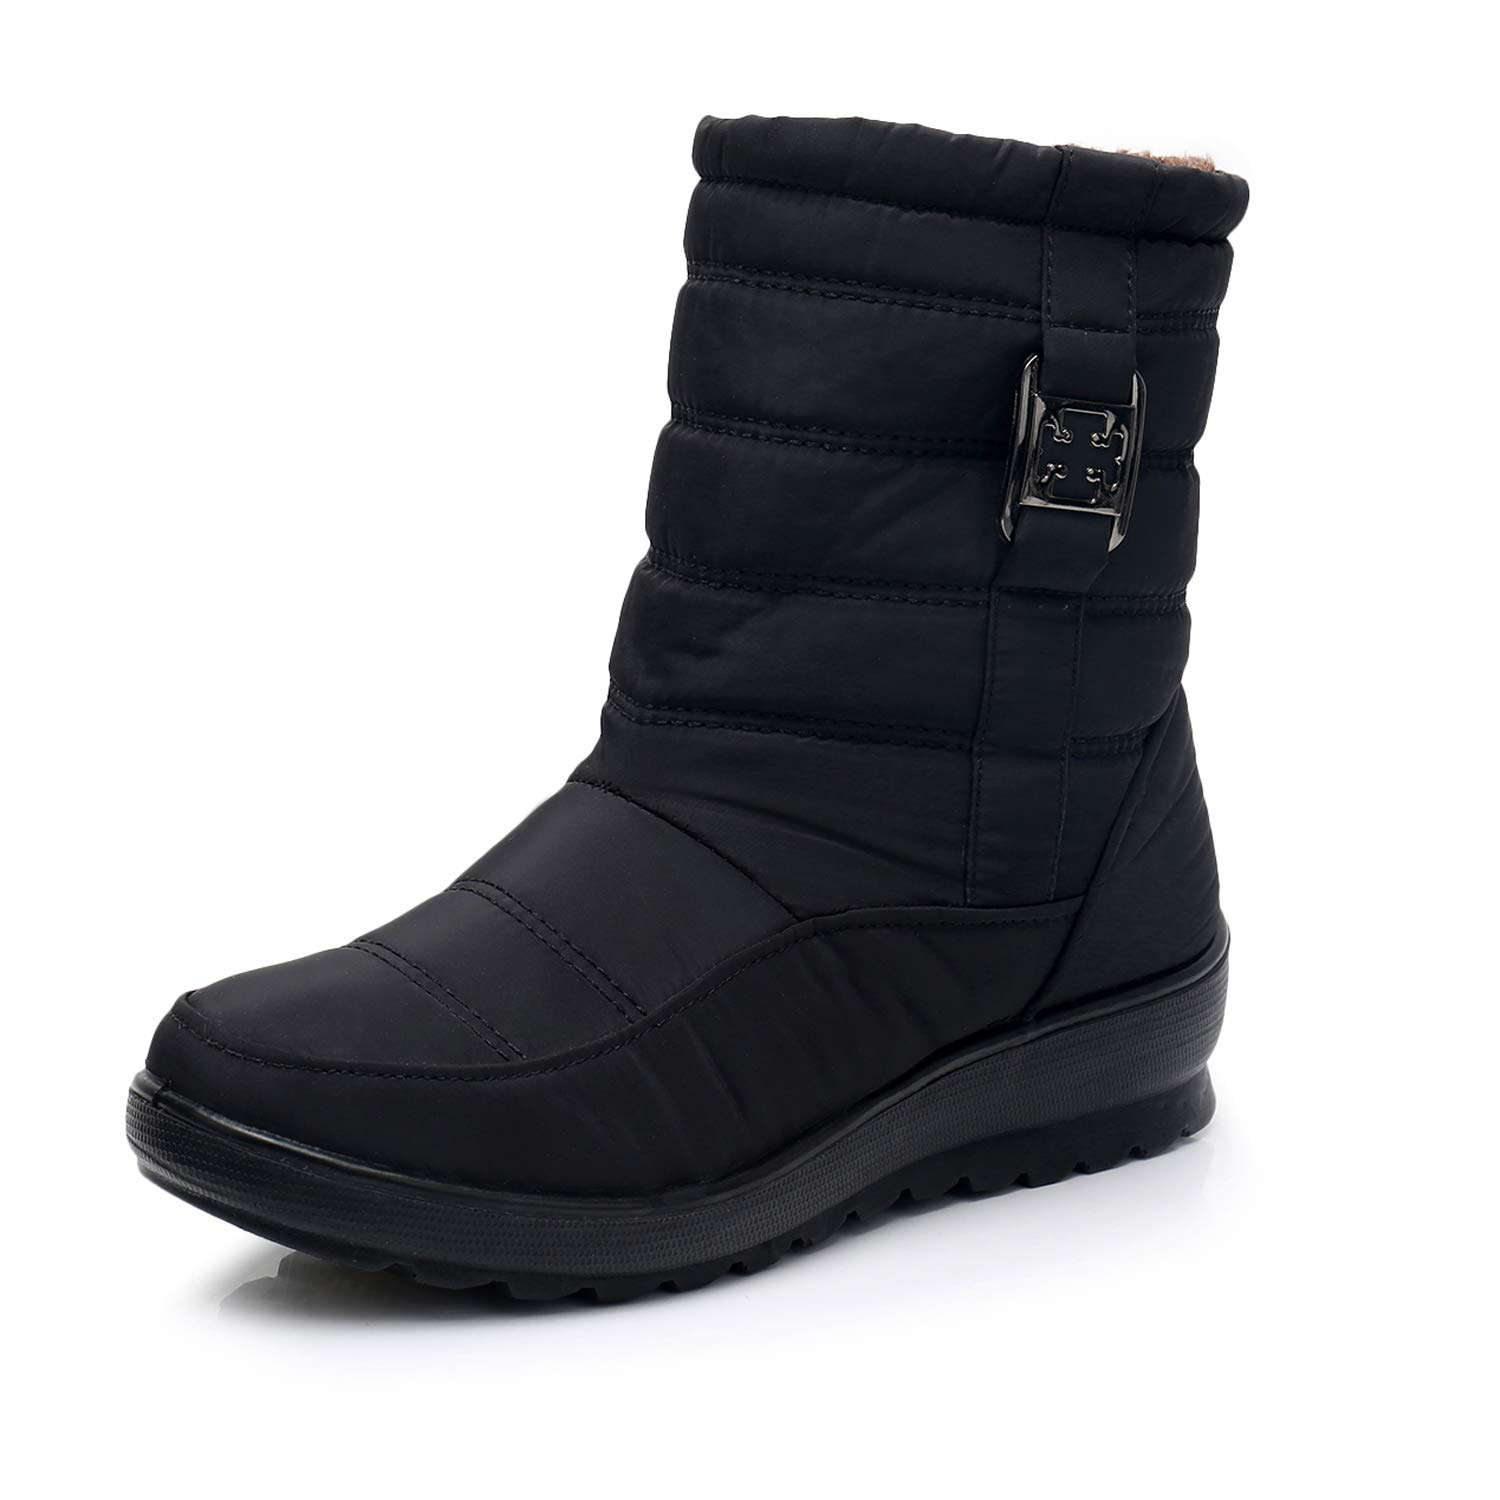 066b837b5c0 HAINE Snow Boots Womens Winter Fur Lined Waterproof Warm Boots Outdoor  Walking Non-Slip Shoes with High Traction Sole